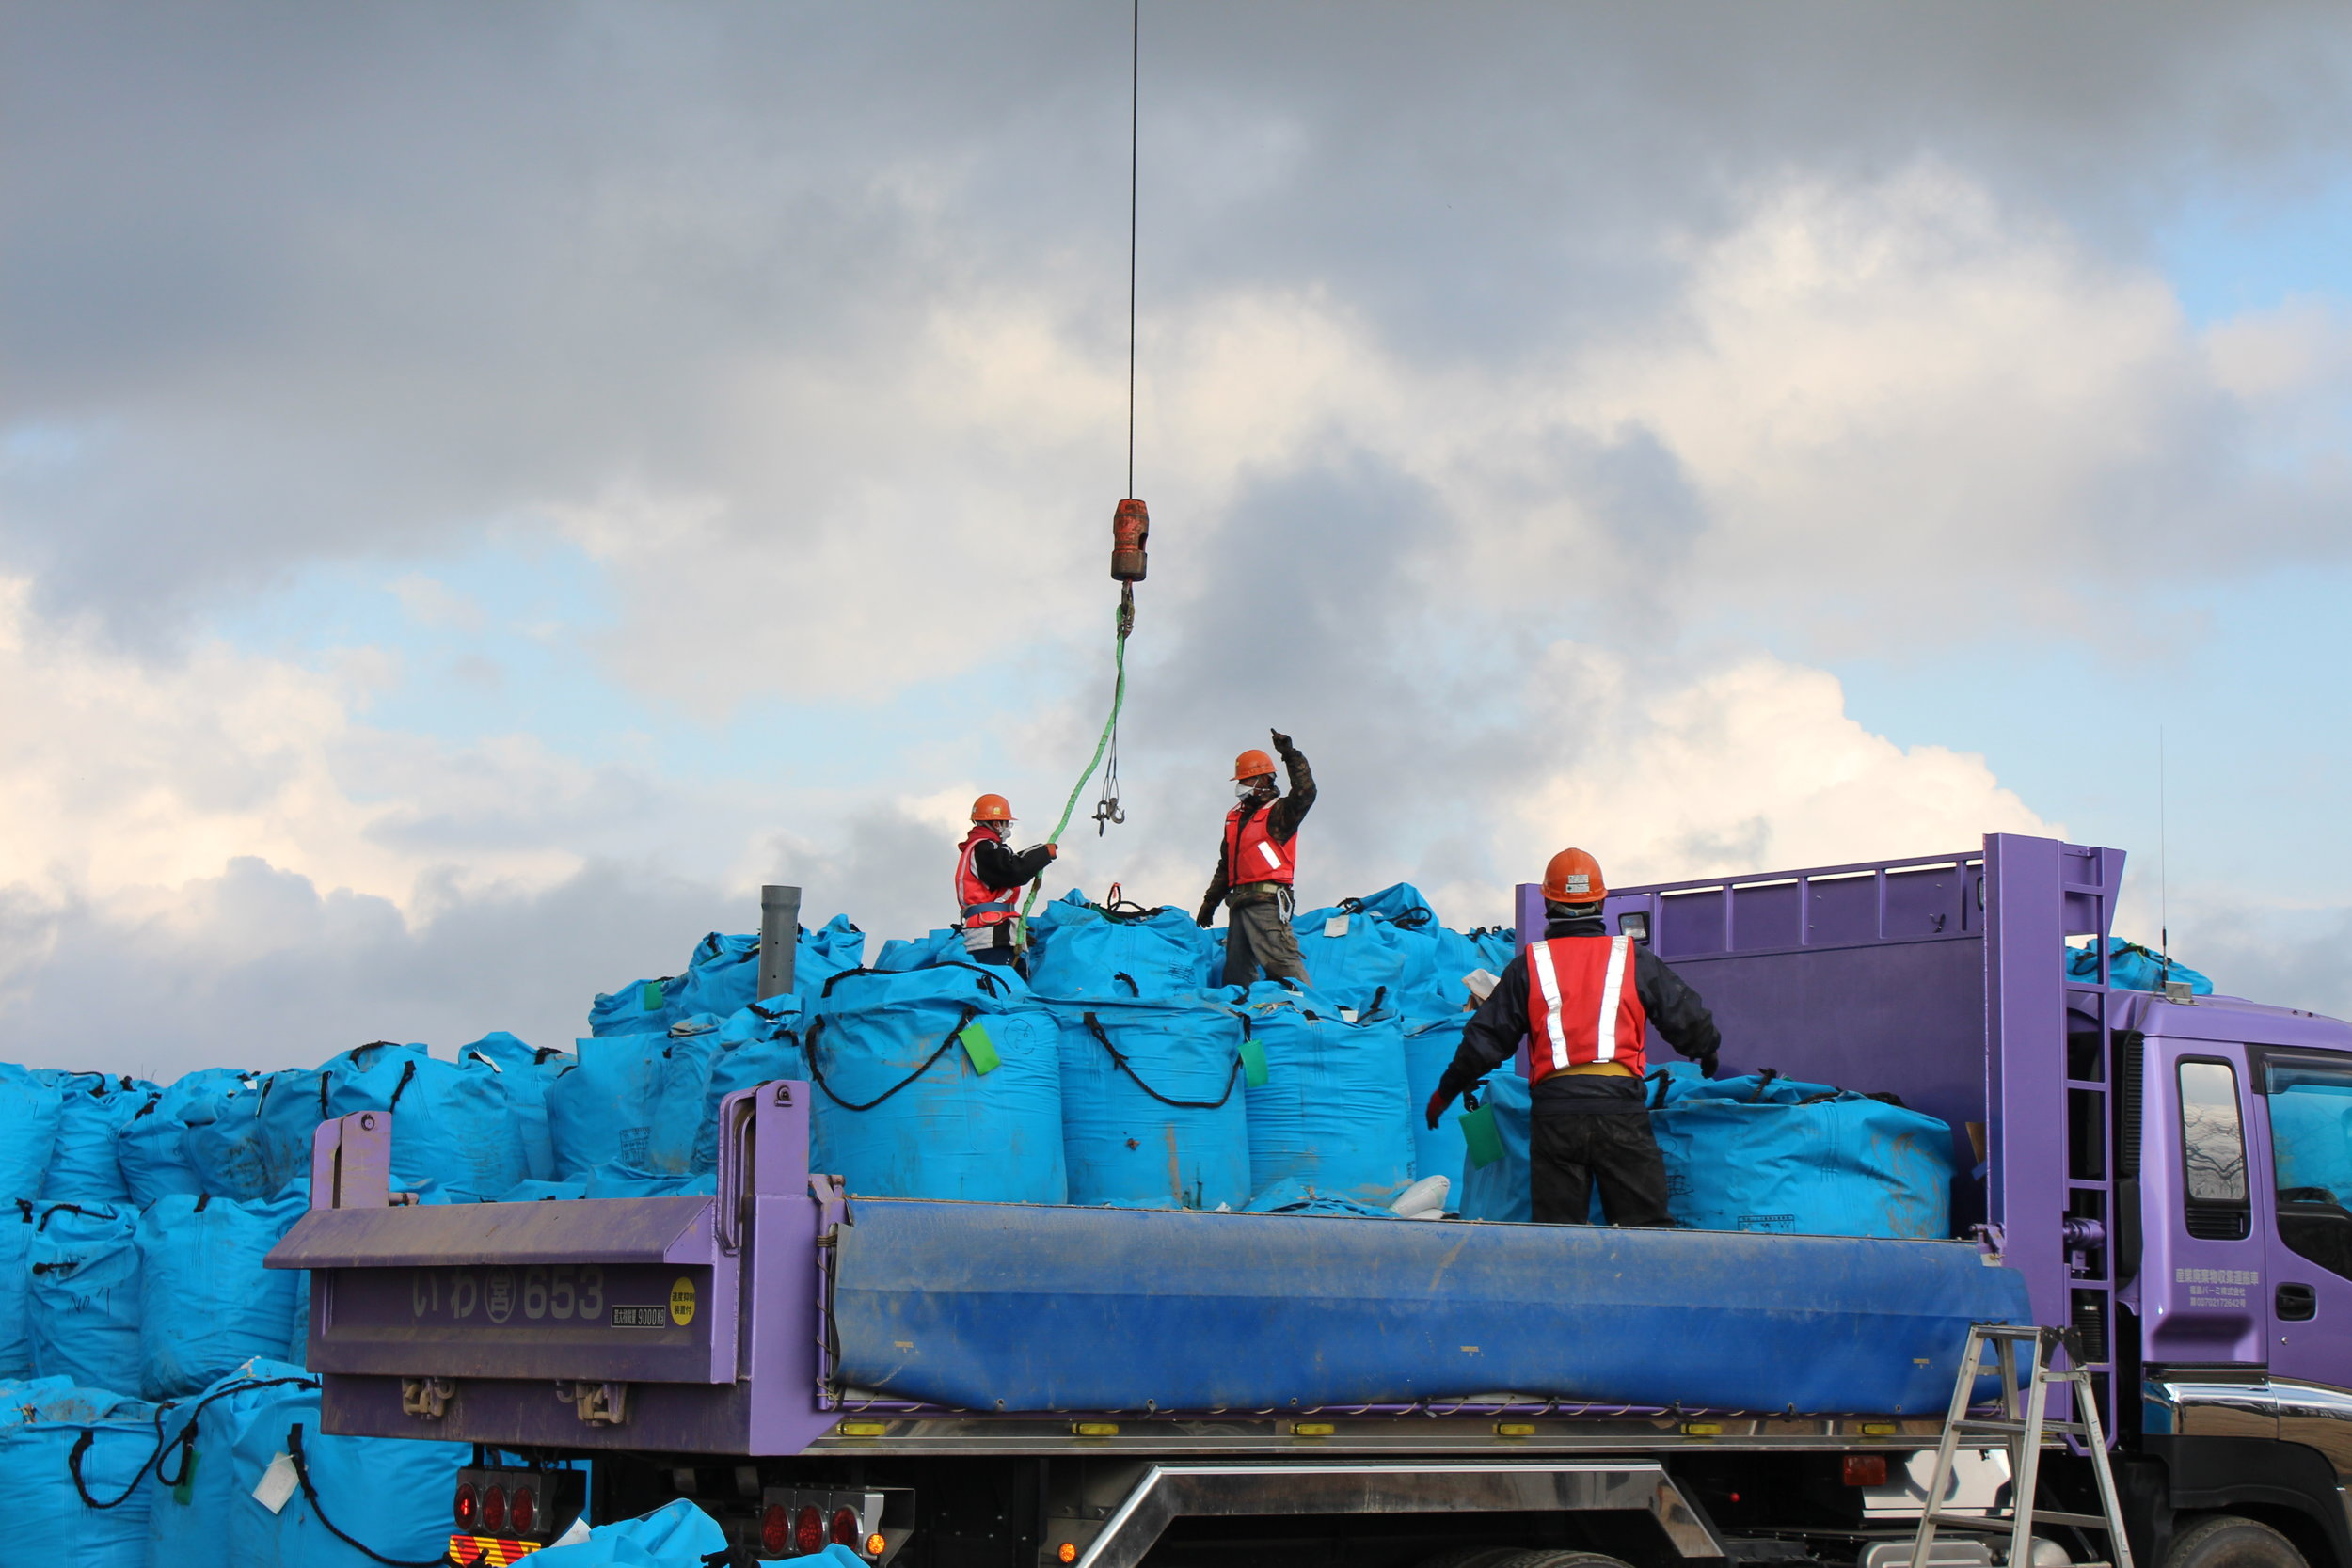 Bags of radioative waste awaiting some final, safe resting place.11.JPG